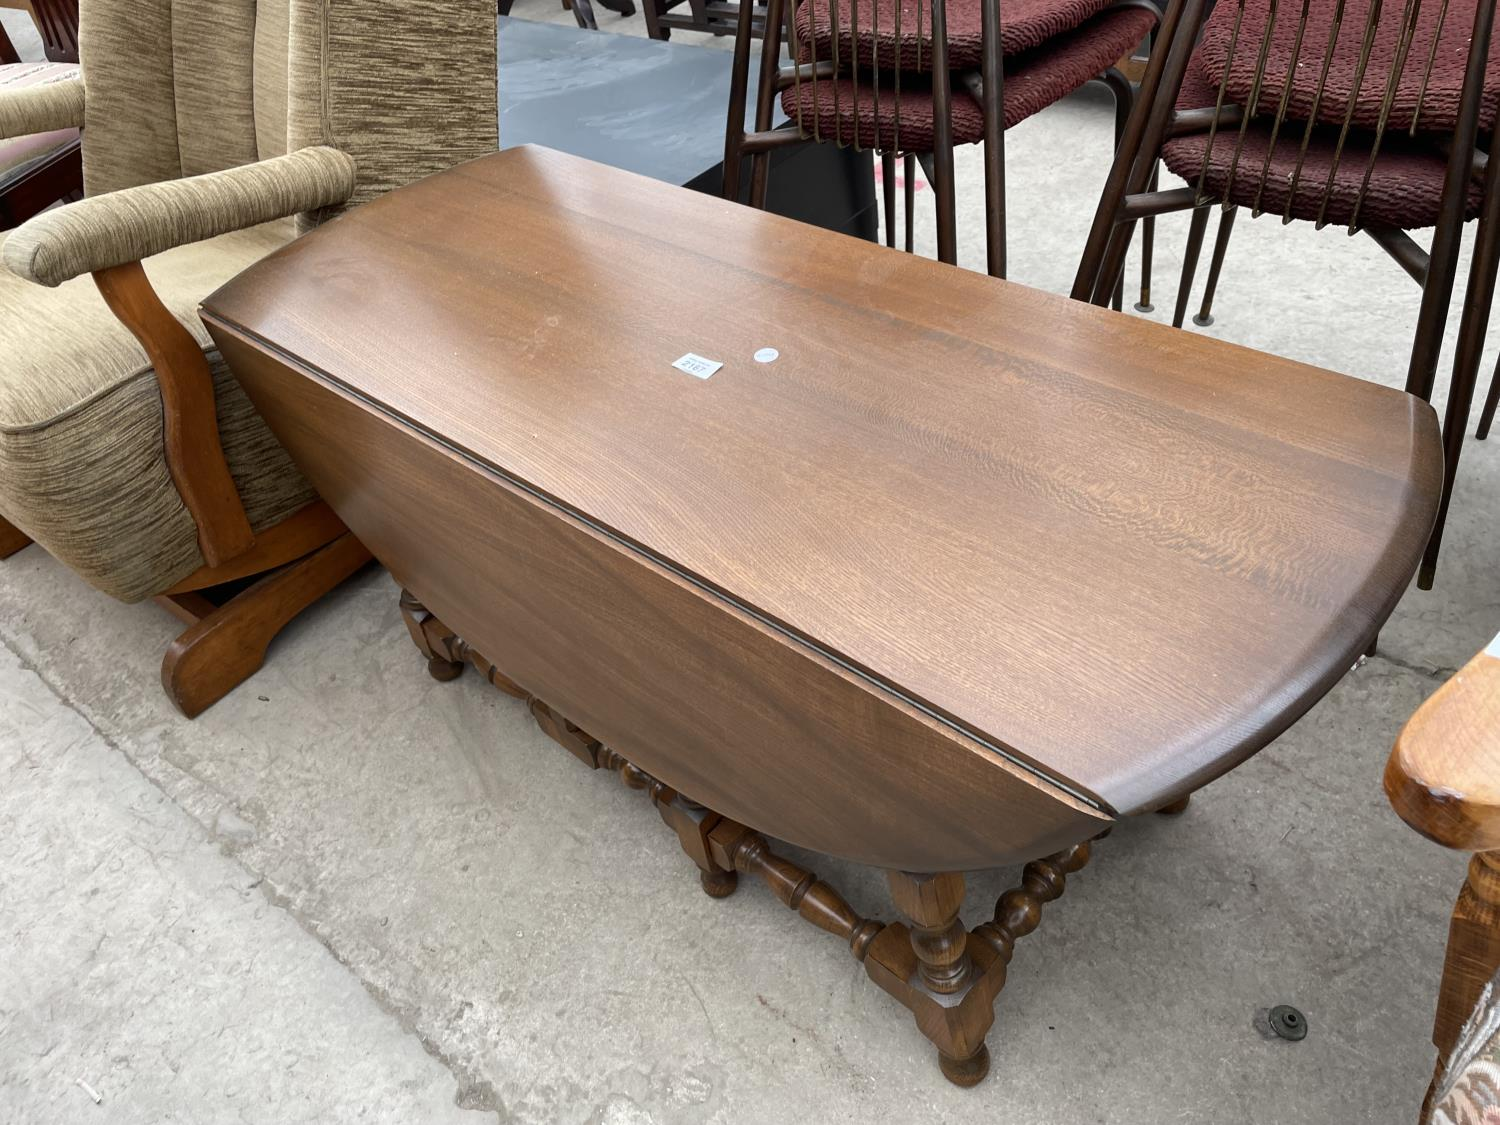 AN ERCOL TWIN-LEAF COFFEE TABLE - Image 4 of 4